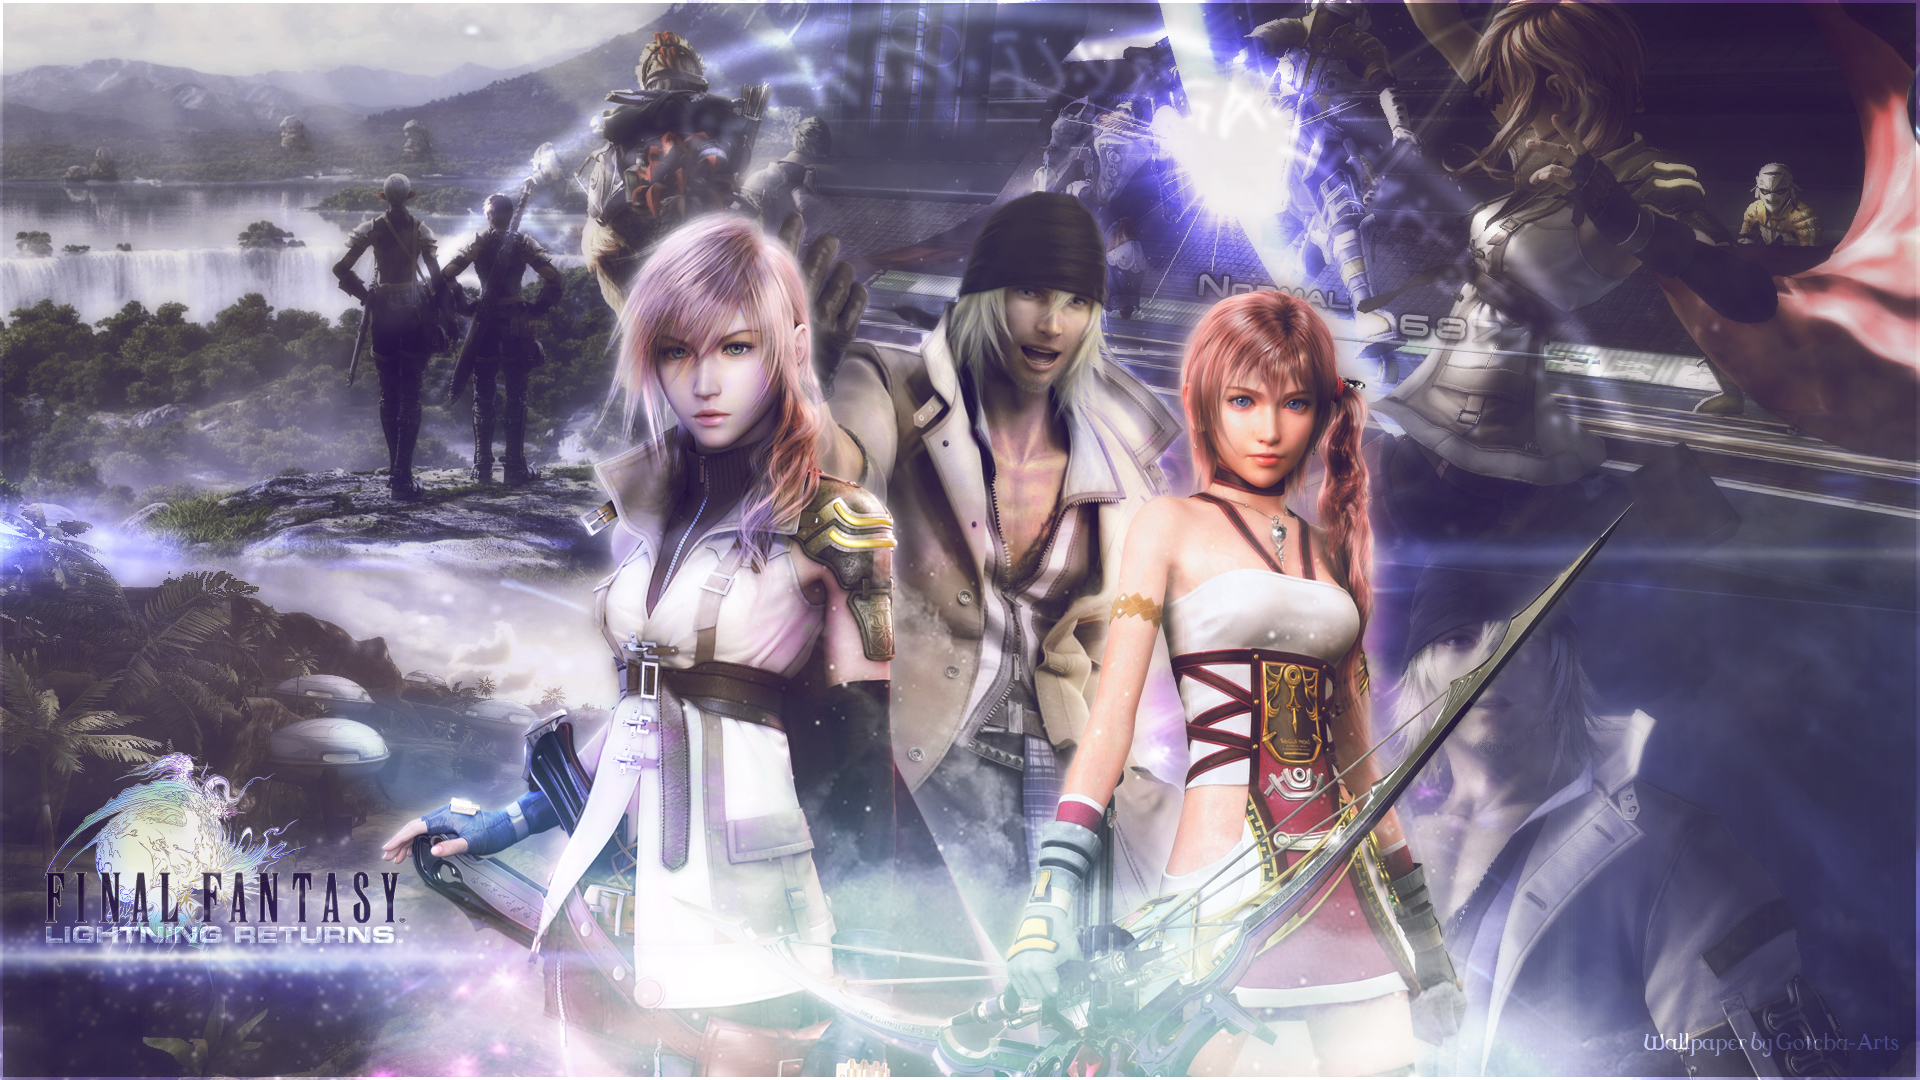 Final fantasy wallpaper lightning returns by corki gfx on deviantart final fantasy wallpaper lightning returns by corki gfx voltagebd Gallery